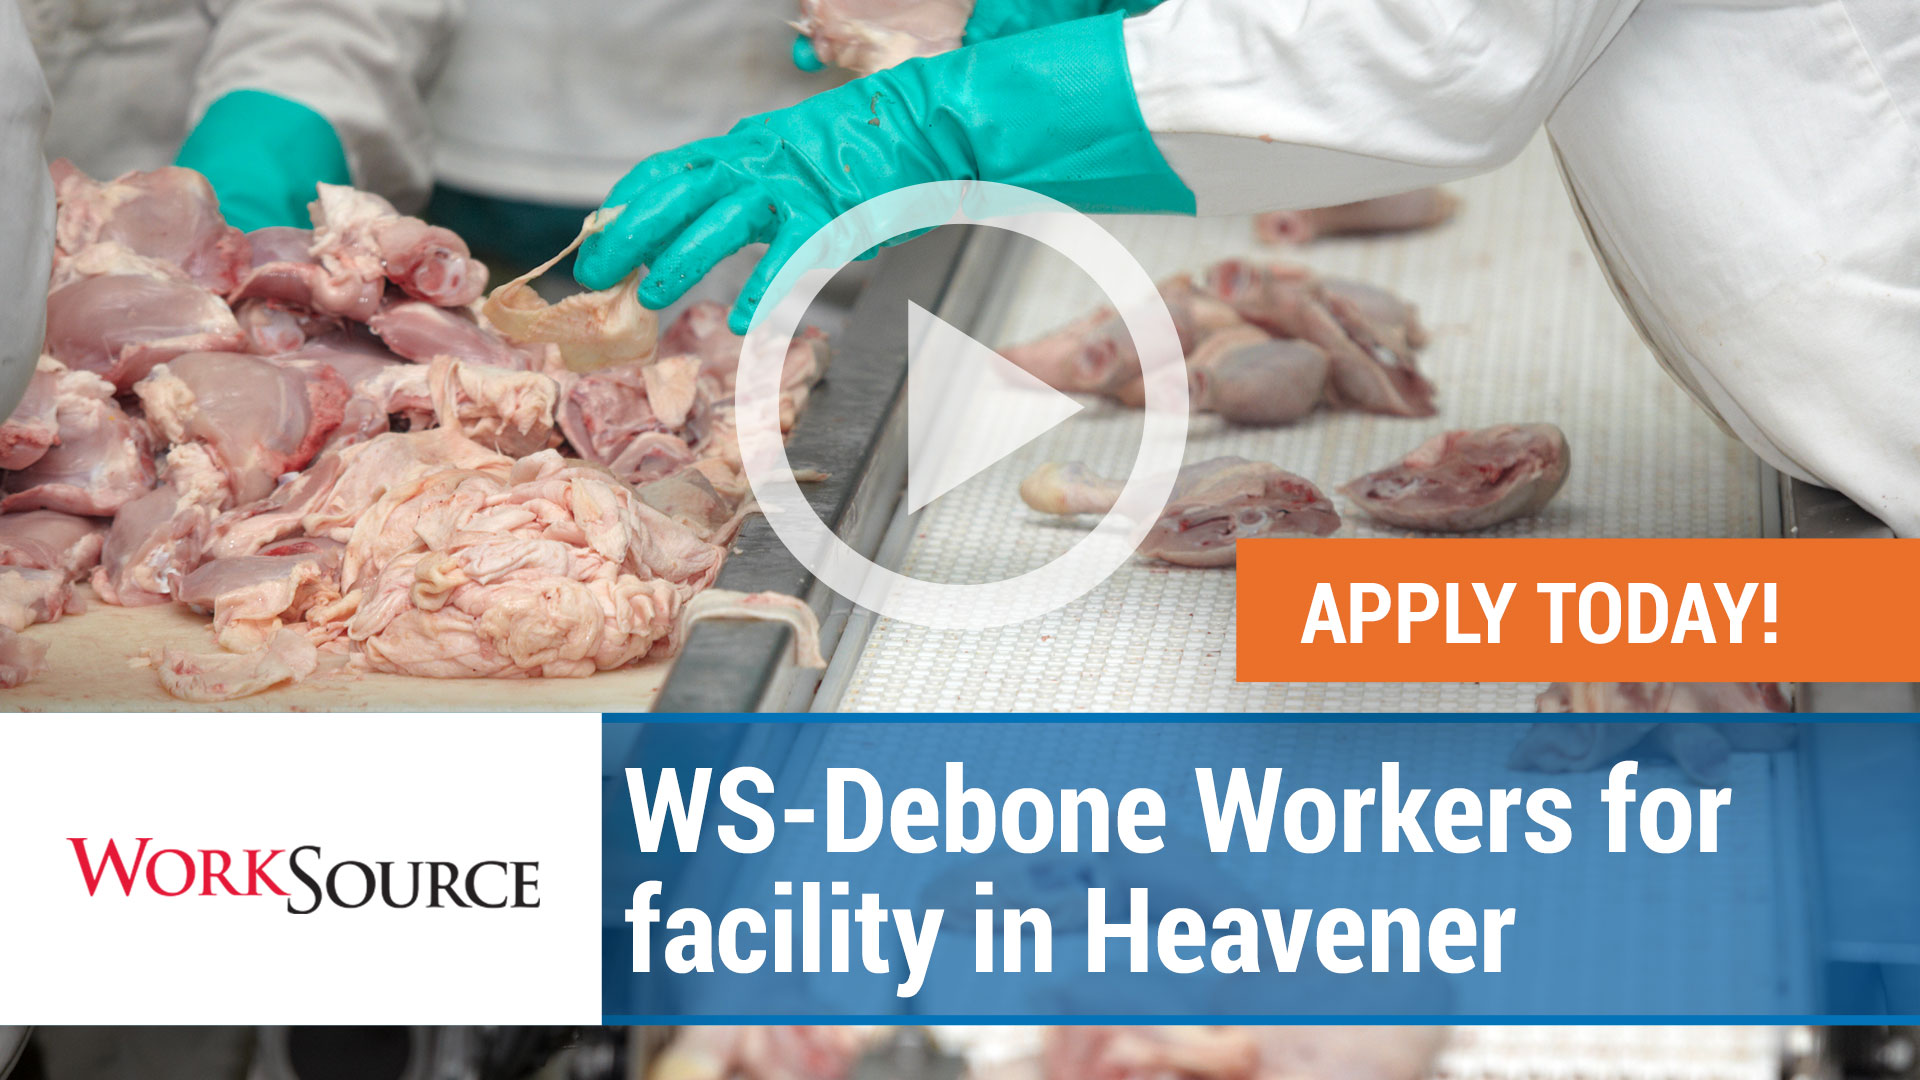 Watch our careers video for available job opening WS Debone Workers for Facility in Heavener in Heavener, Oklahoma